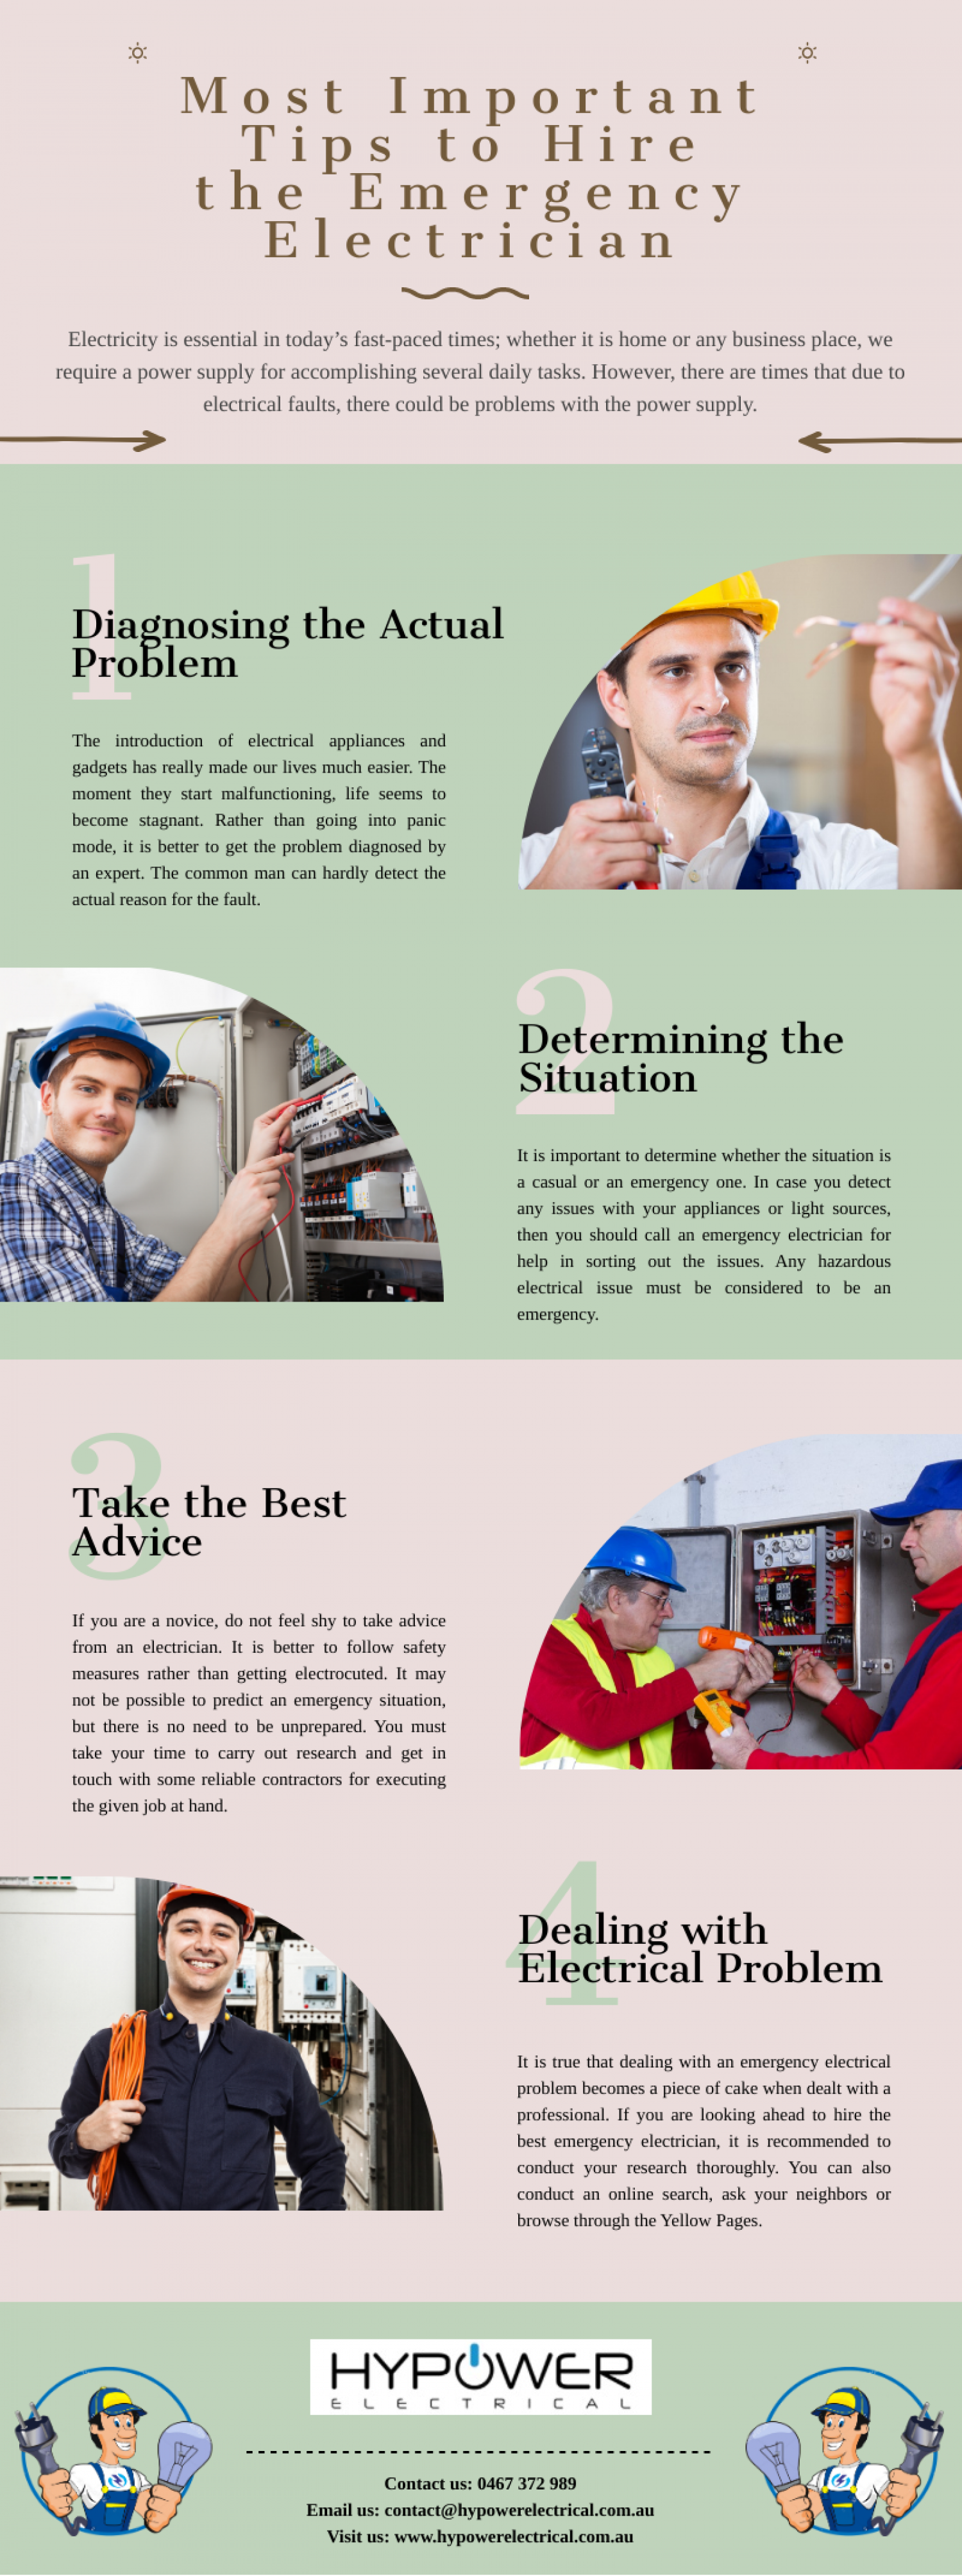 Most Important Tips to Hire the Emergency Electrician Infographic